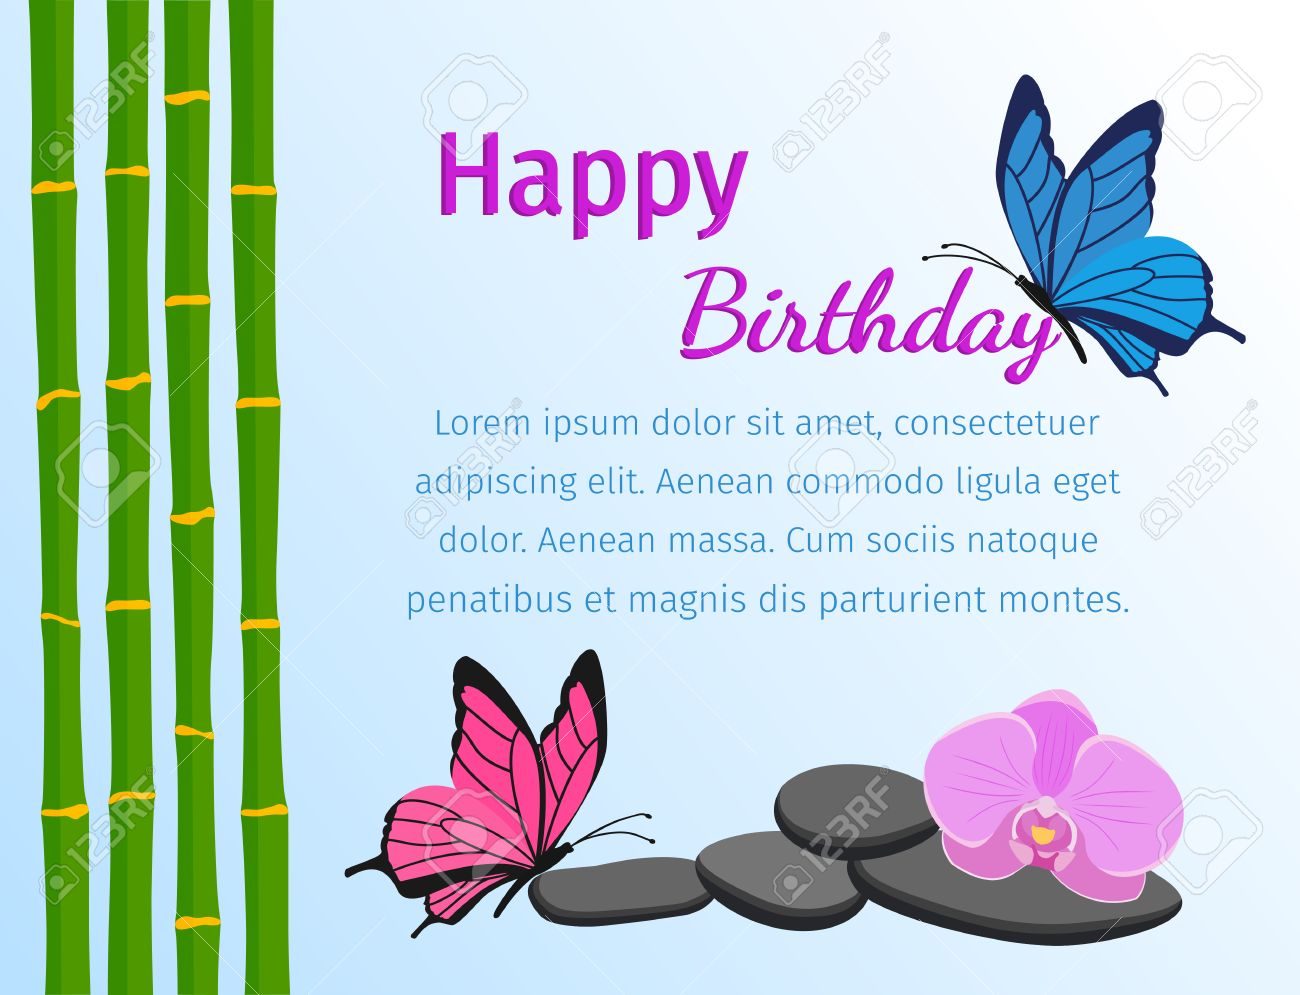 Happy Birthday Greeting Card With Butterflies And Bamboo Stems Happy Birthday Wishes Butterfly